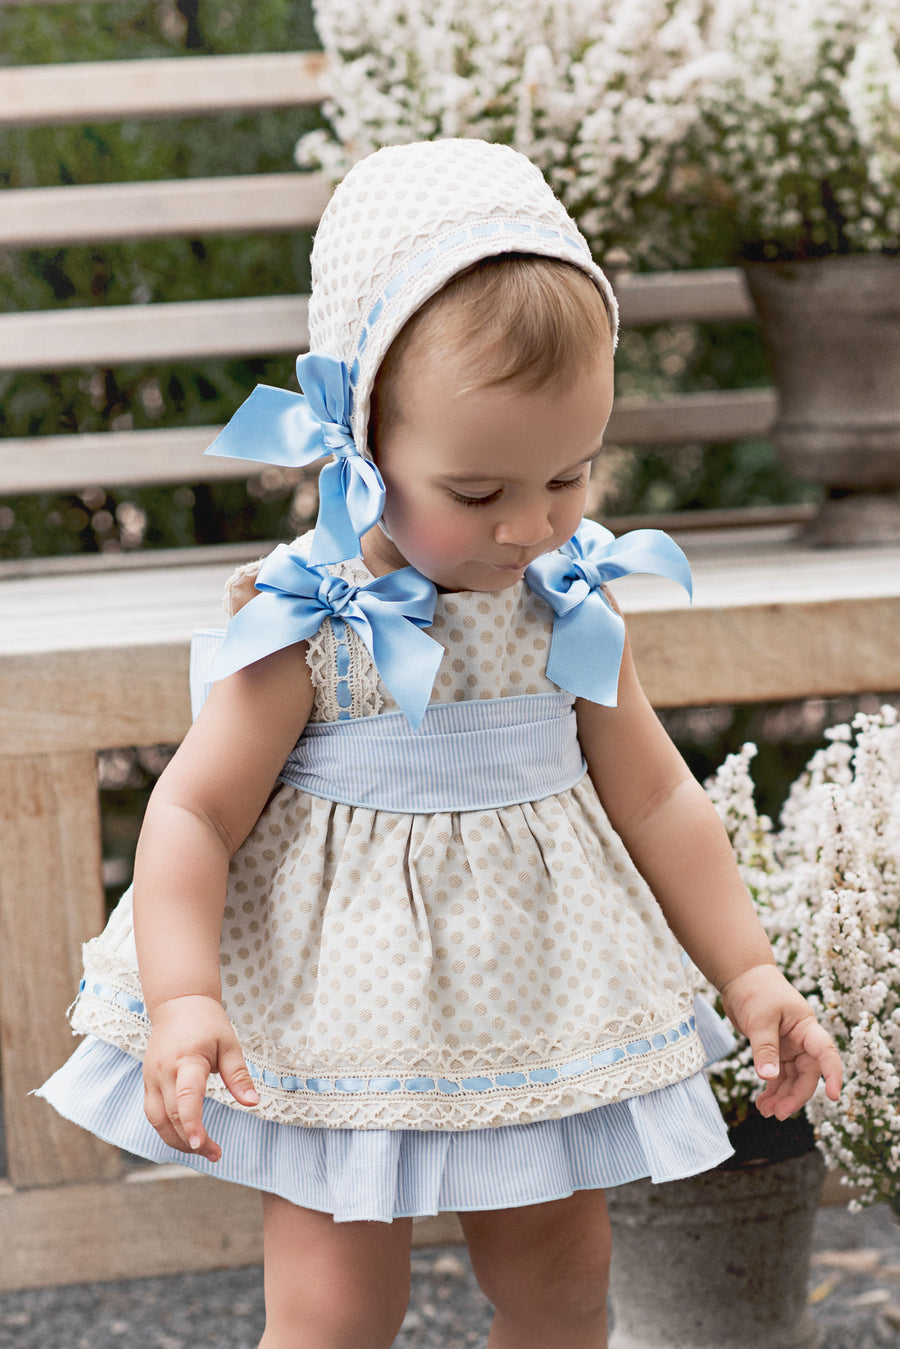 Beige Polka Dot Dress with Light Blue